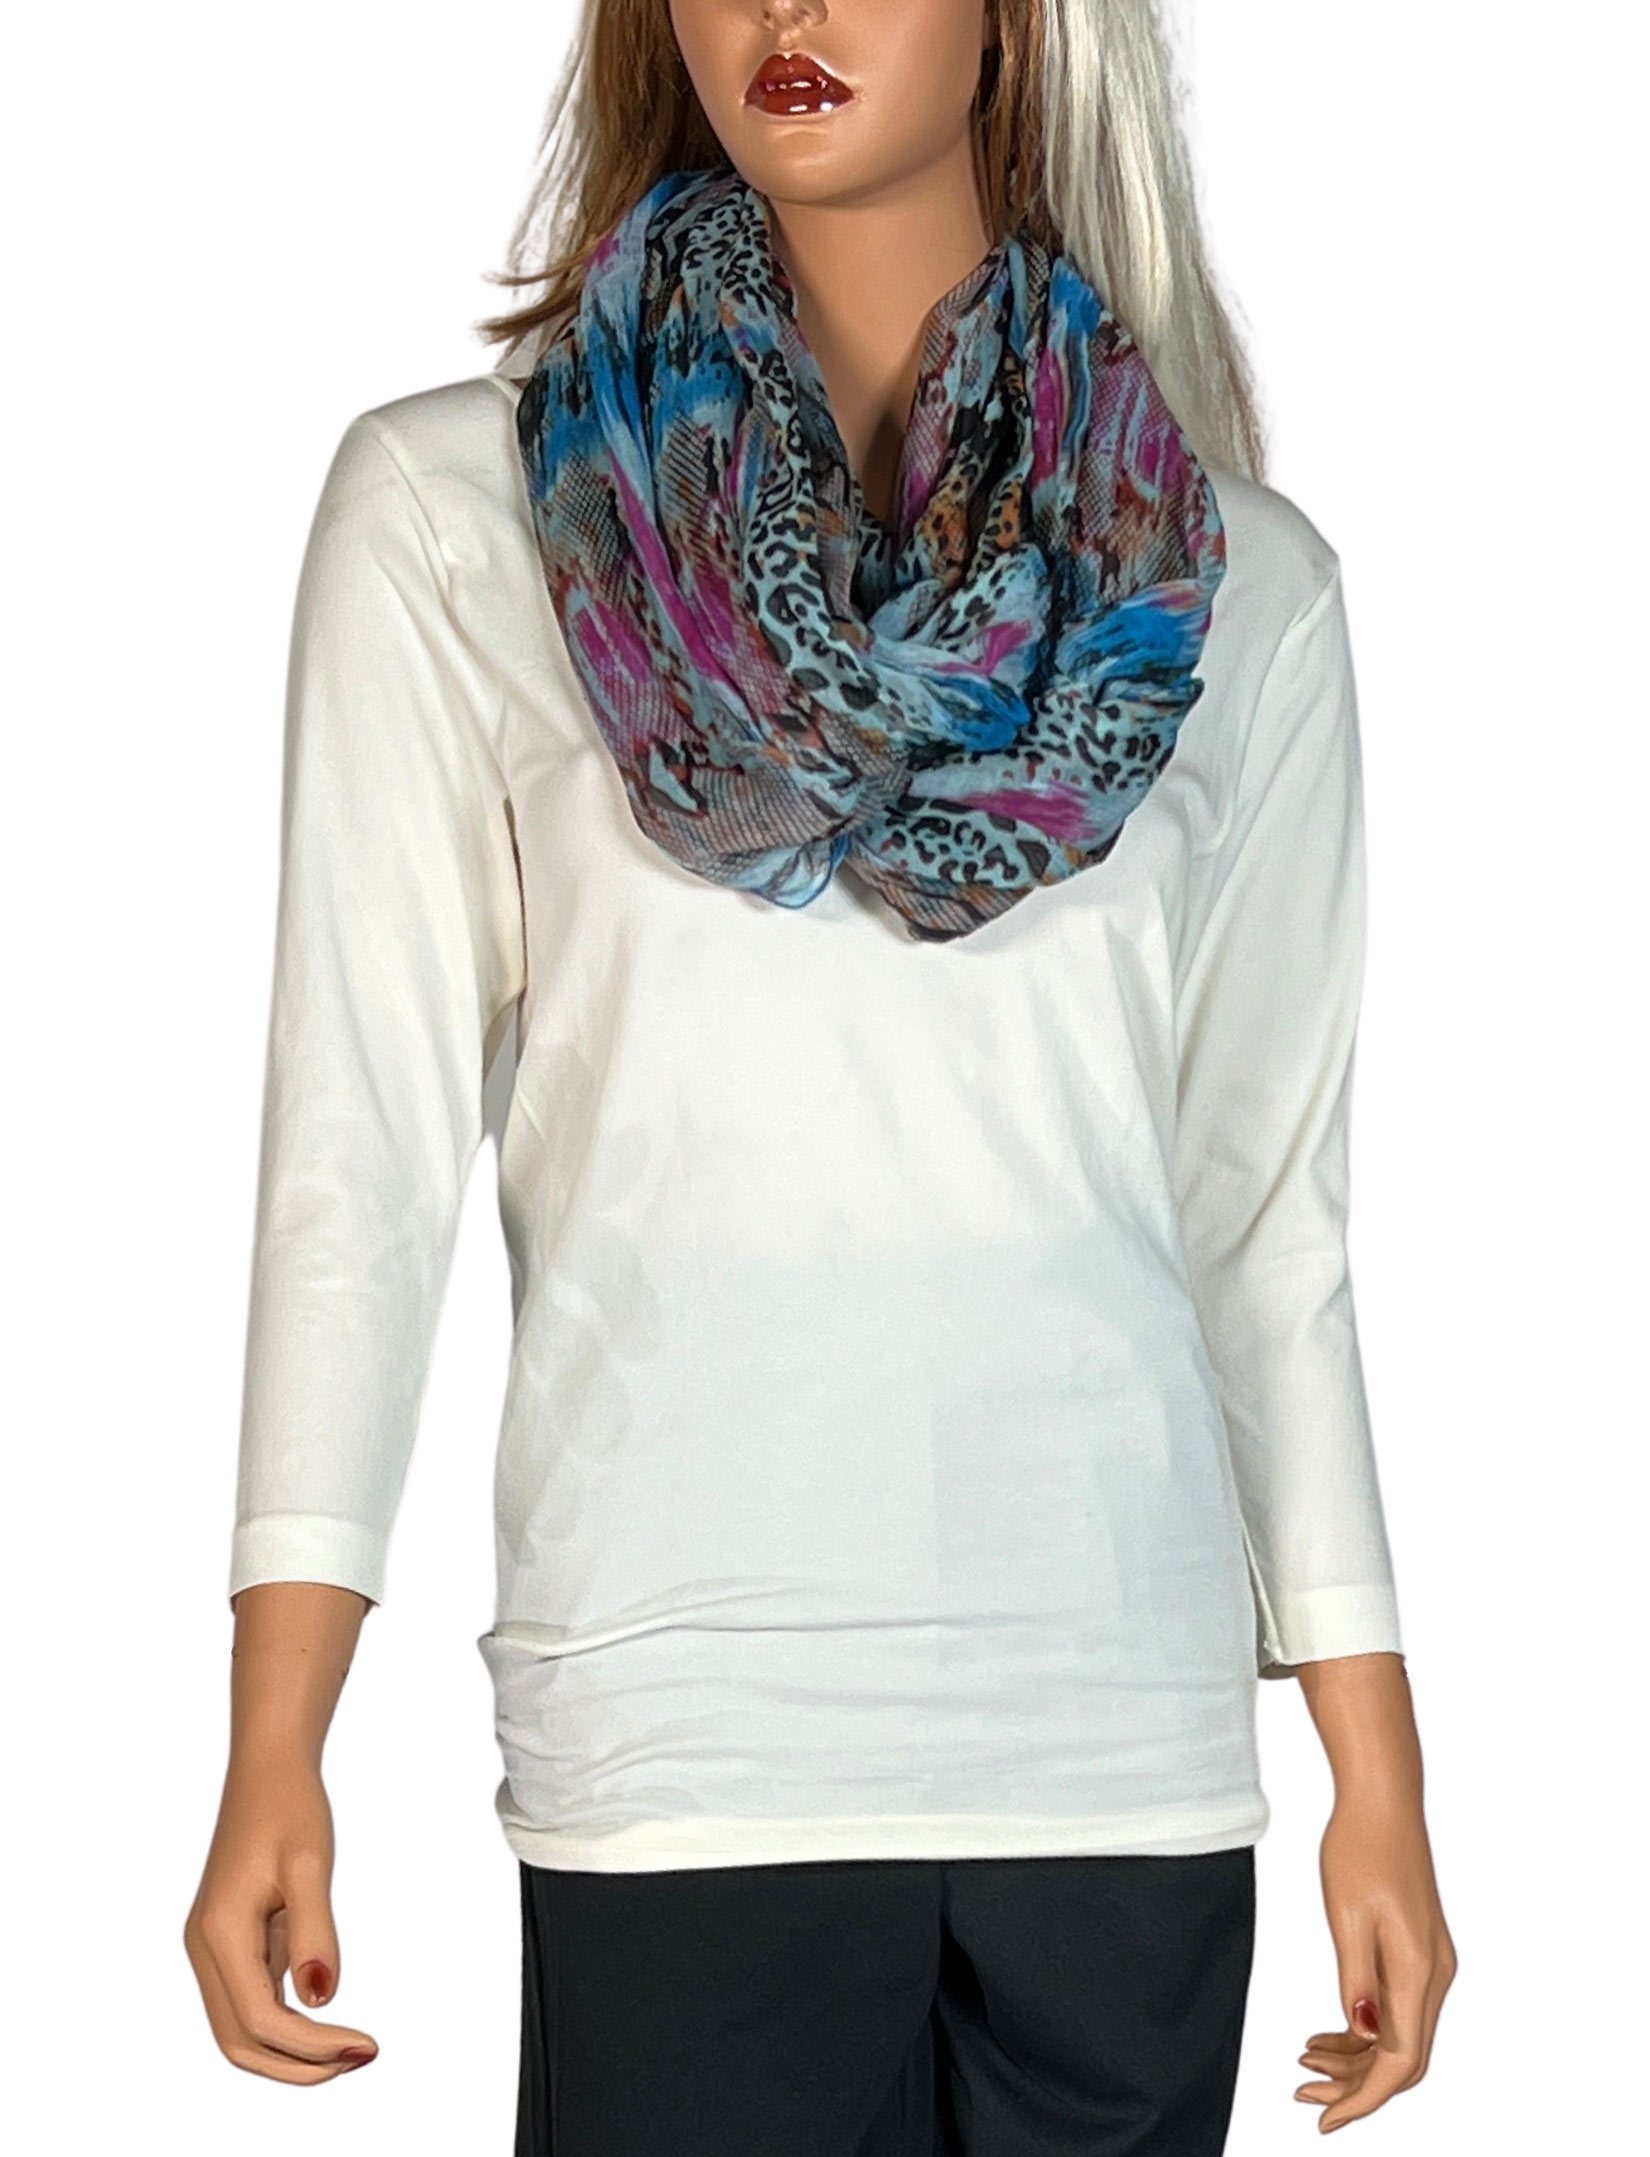 wholesale Infinity Scarves Wide - Snake Print 3062